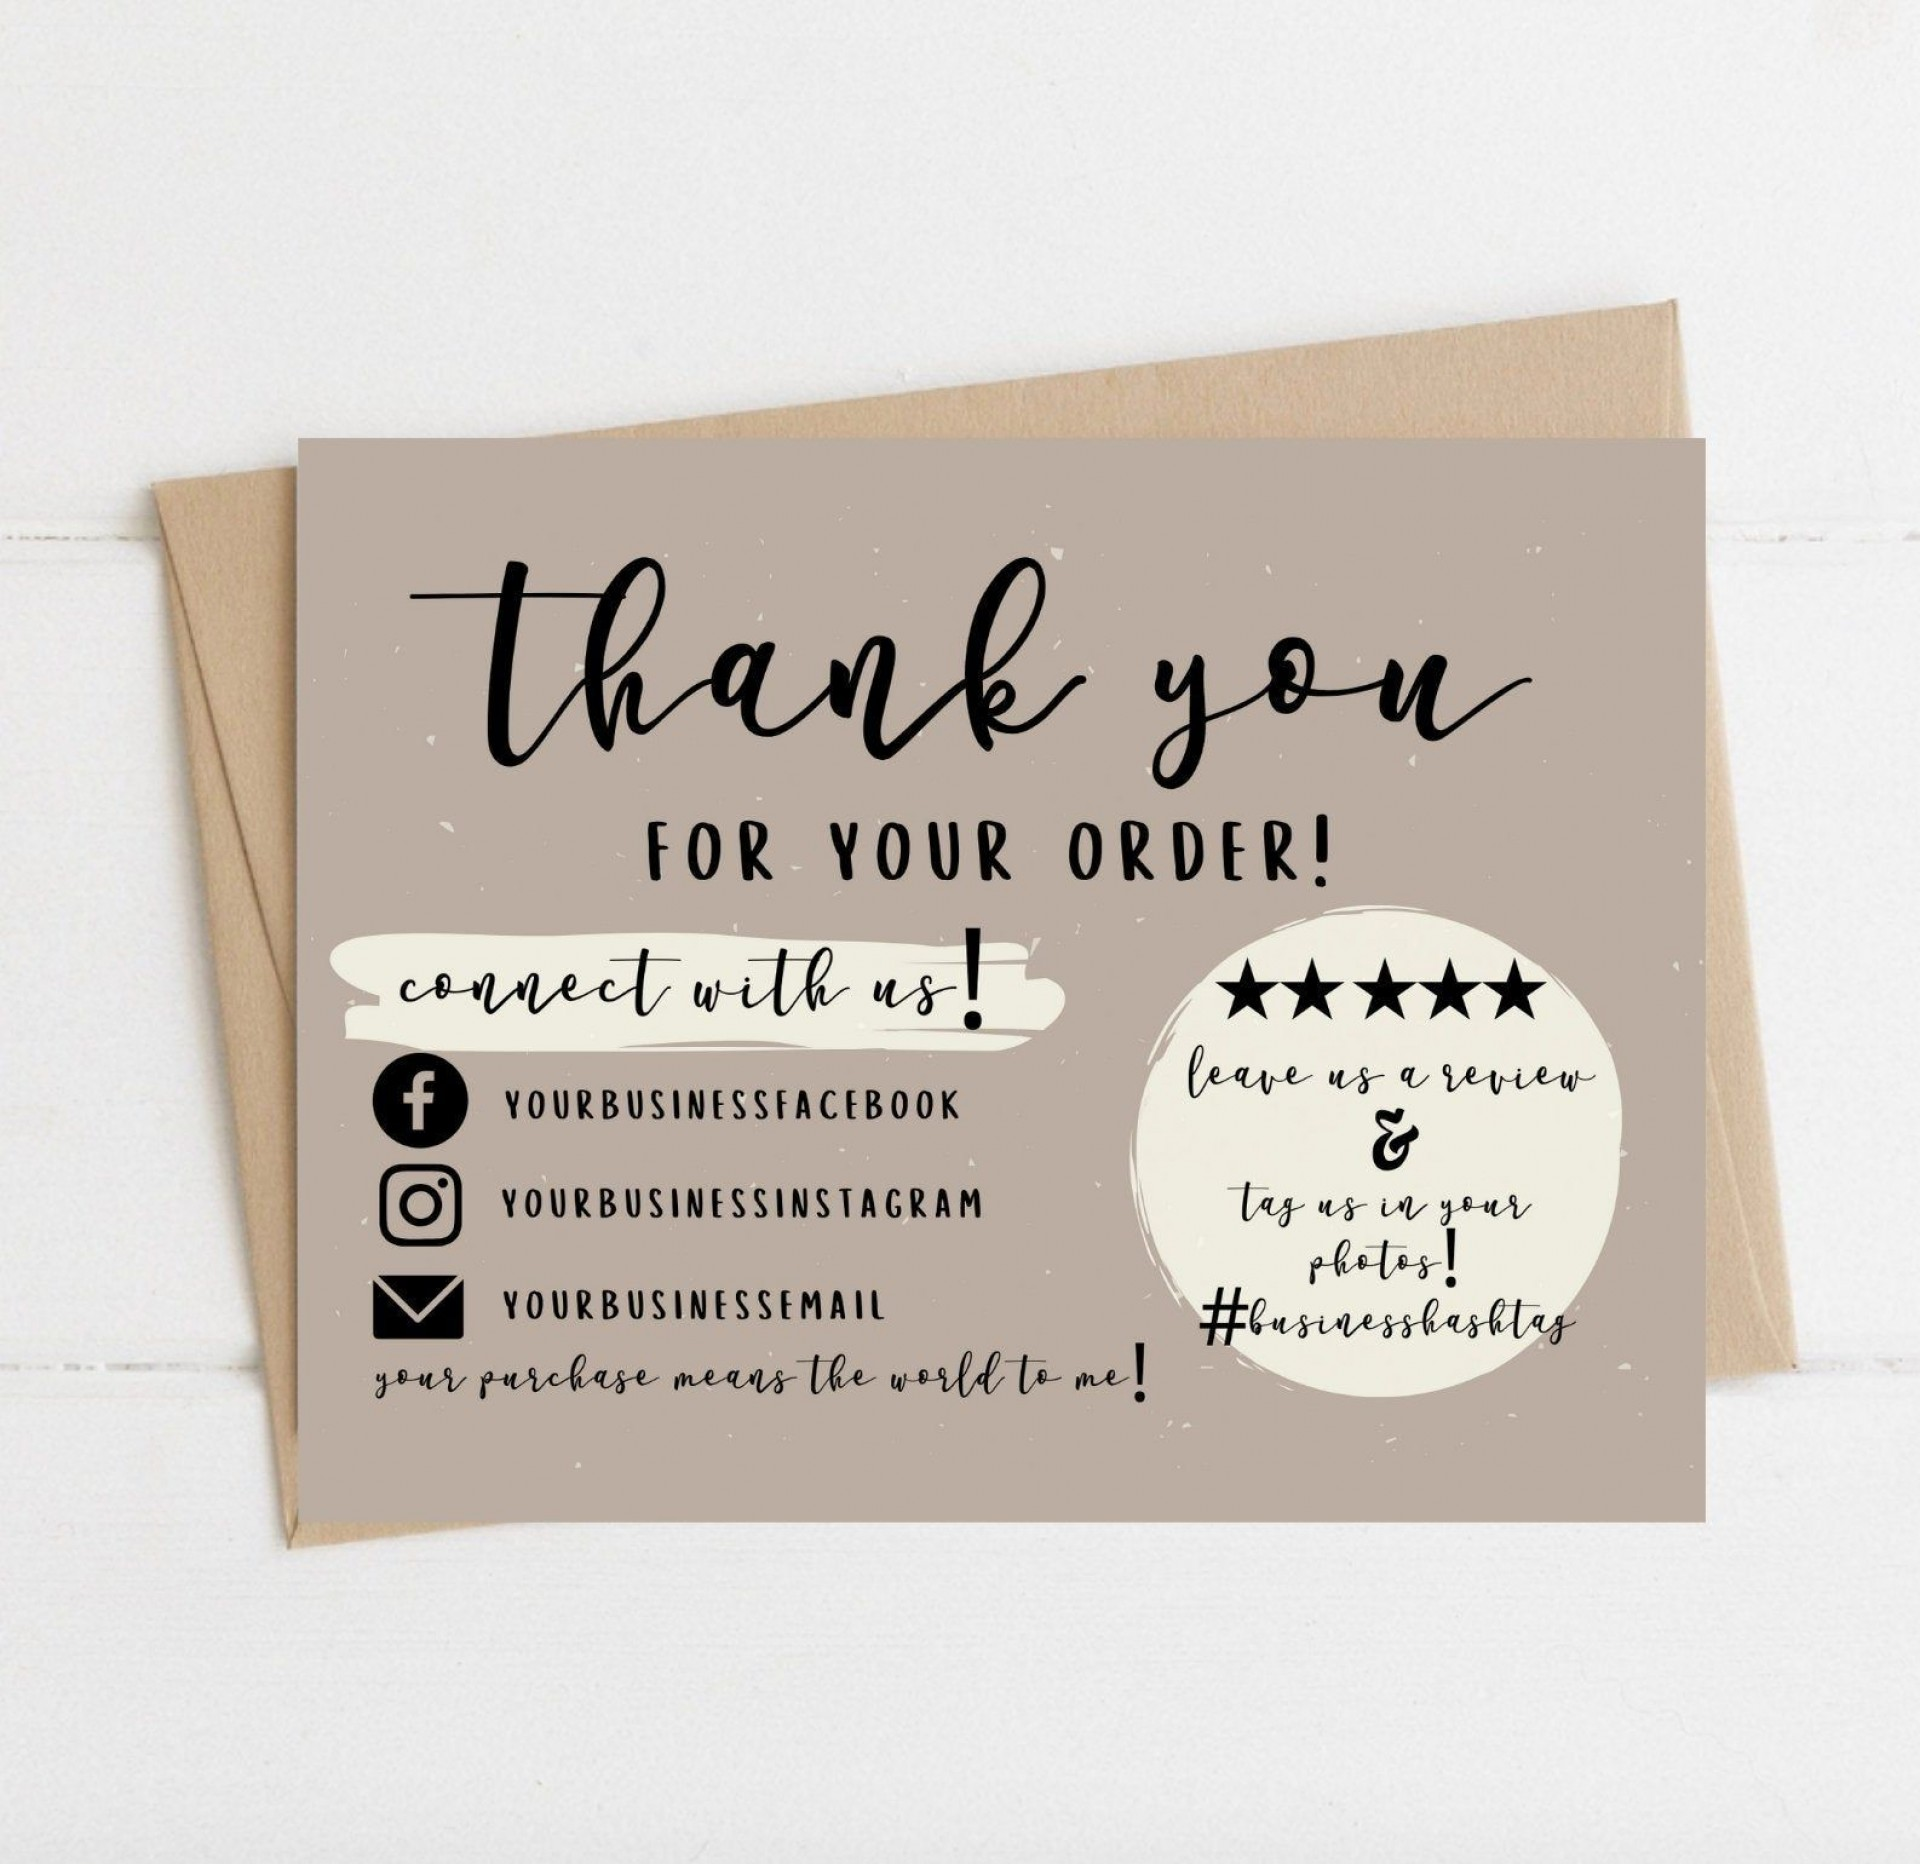 004 Wondrou Thank You Card Template Sample  Wedding Busines Word Free1920